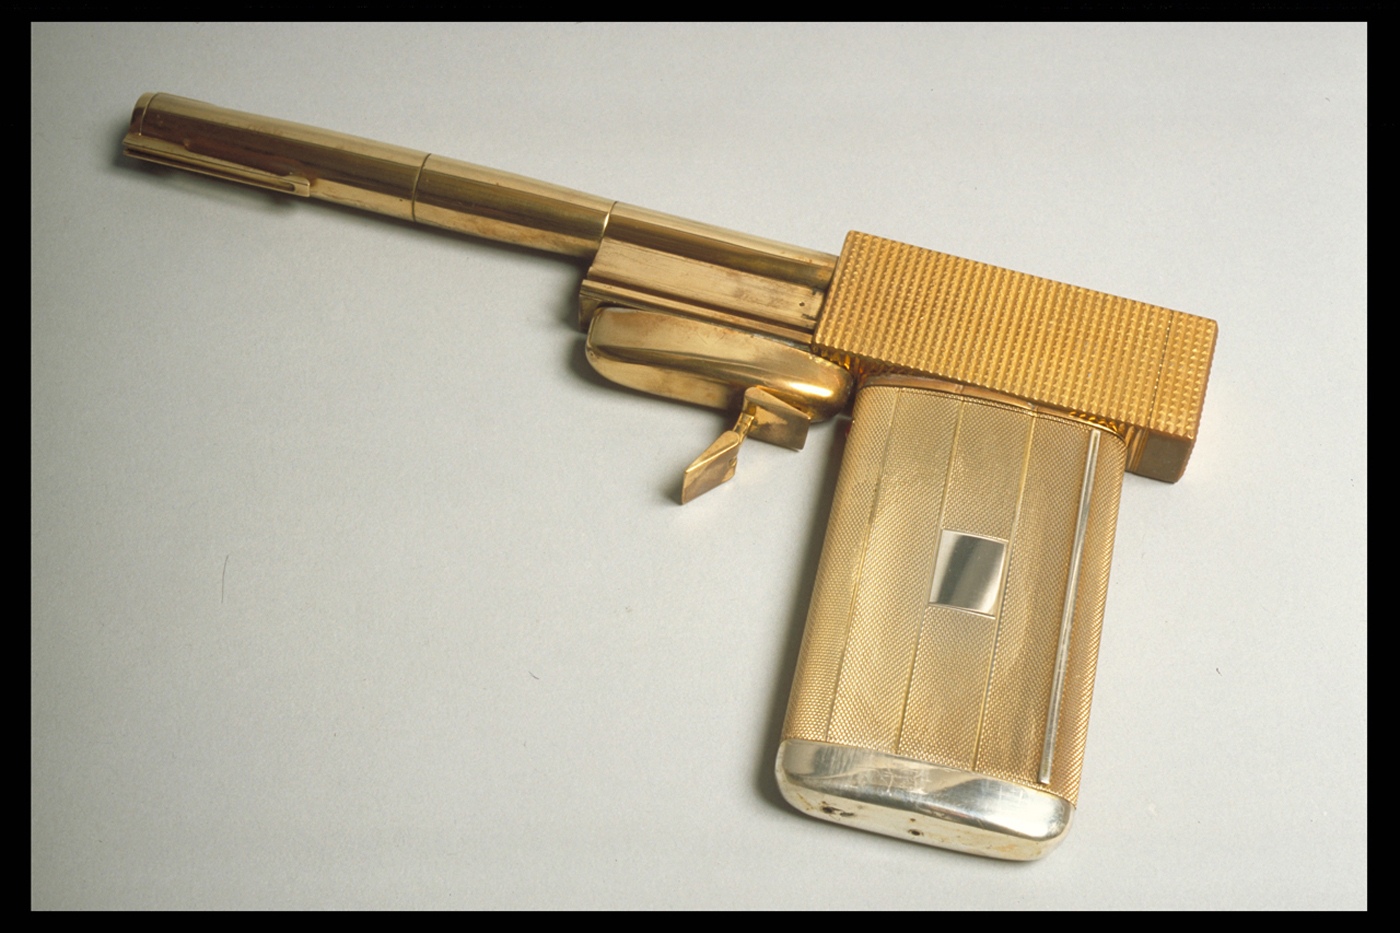 Scaramanga's Golden Gun (© 1974 Danjaq, LLC and United Artsts Corporation; all rights reserved)